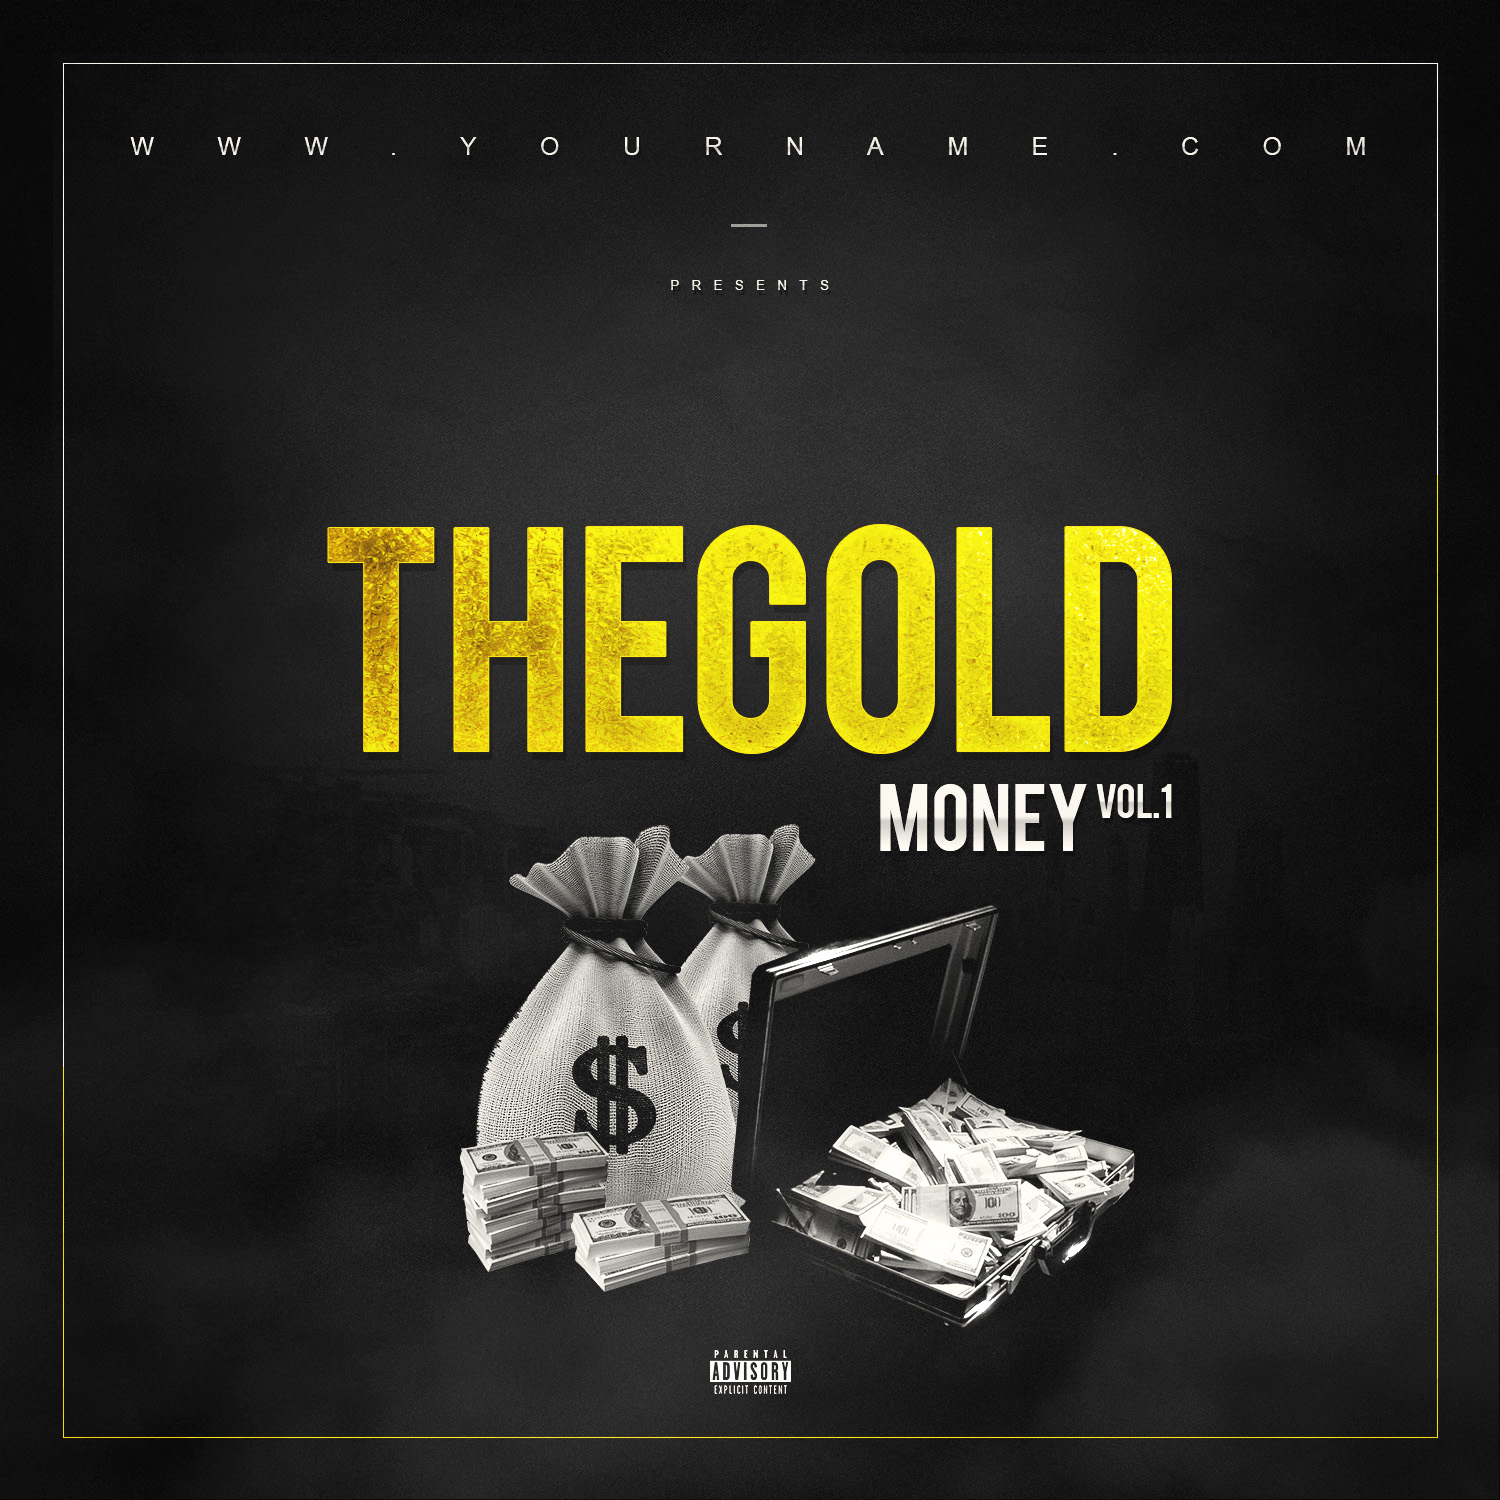 Gold money mixtape cover template vms for Free mixtape covers templates